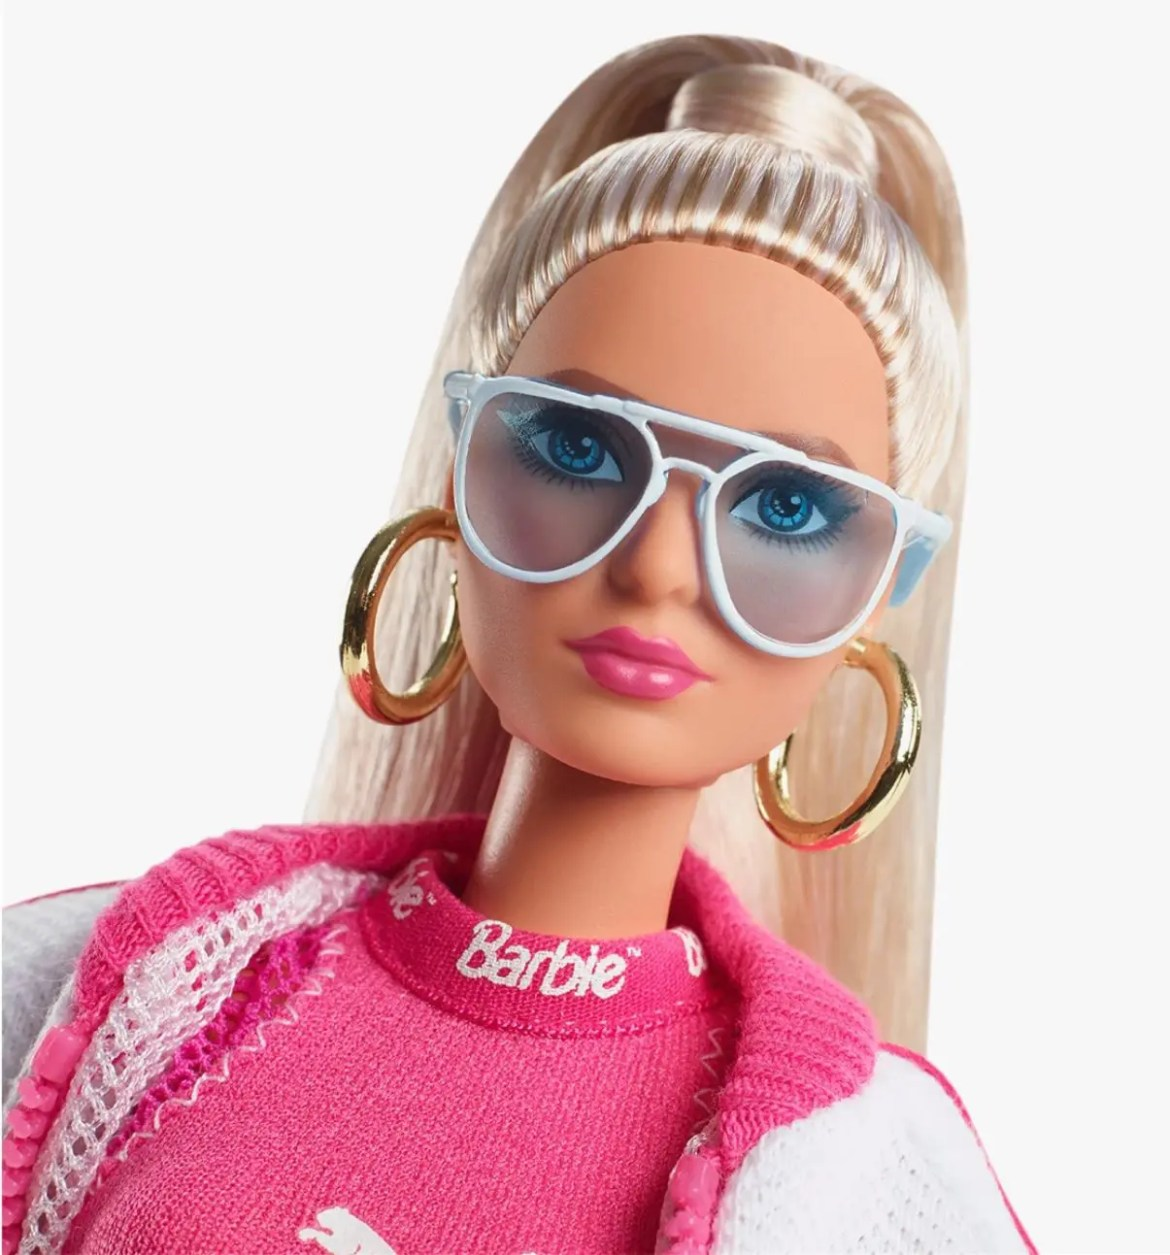 Barbie x PUMA Unveil an Exclusive Doll Set for the Suede Sneaker 50th Anniversary-06